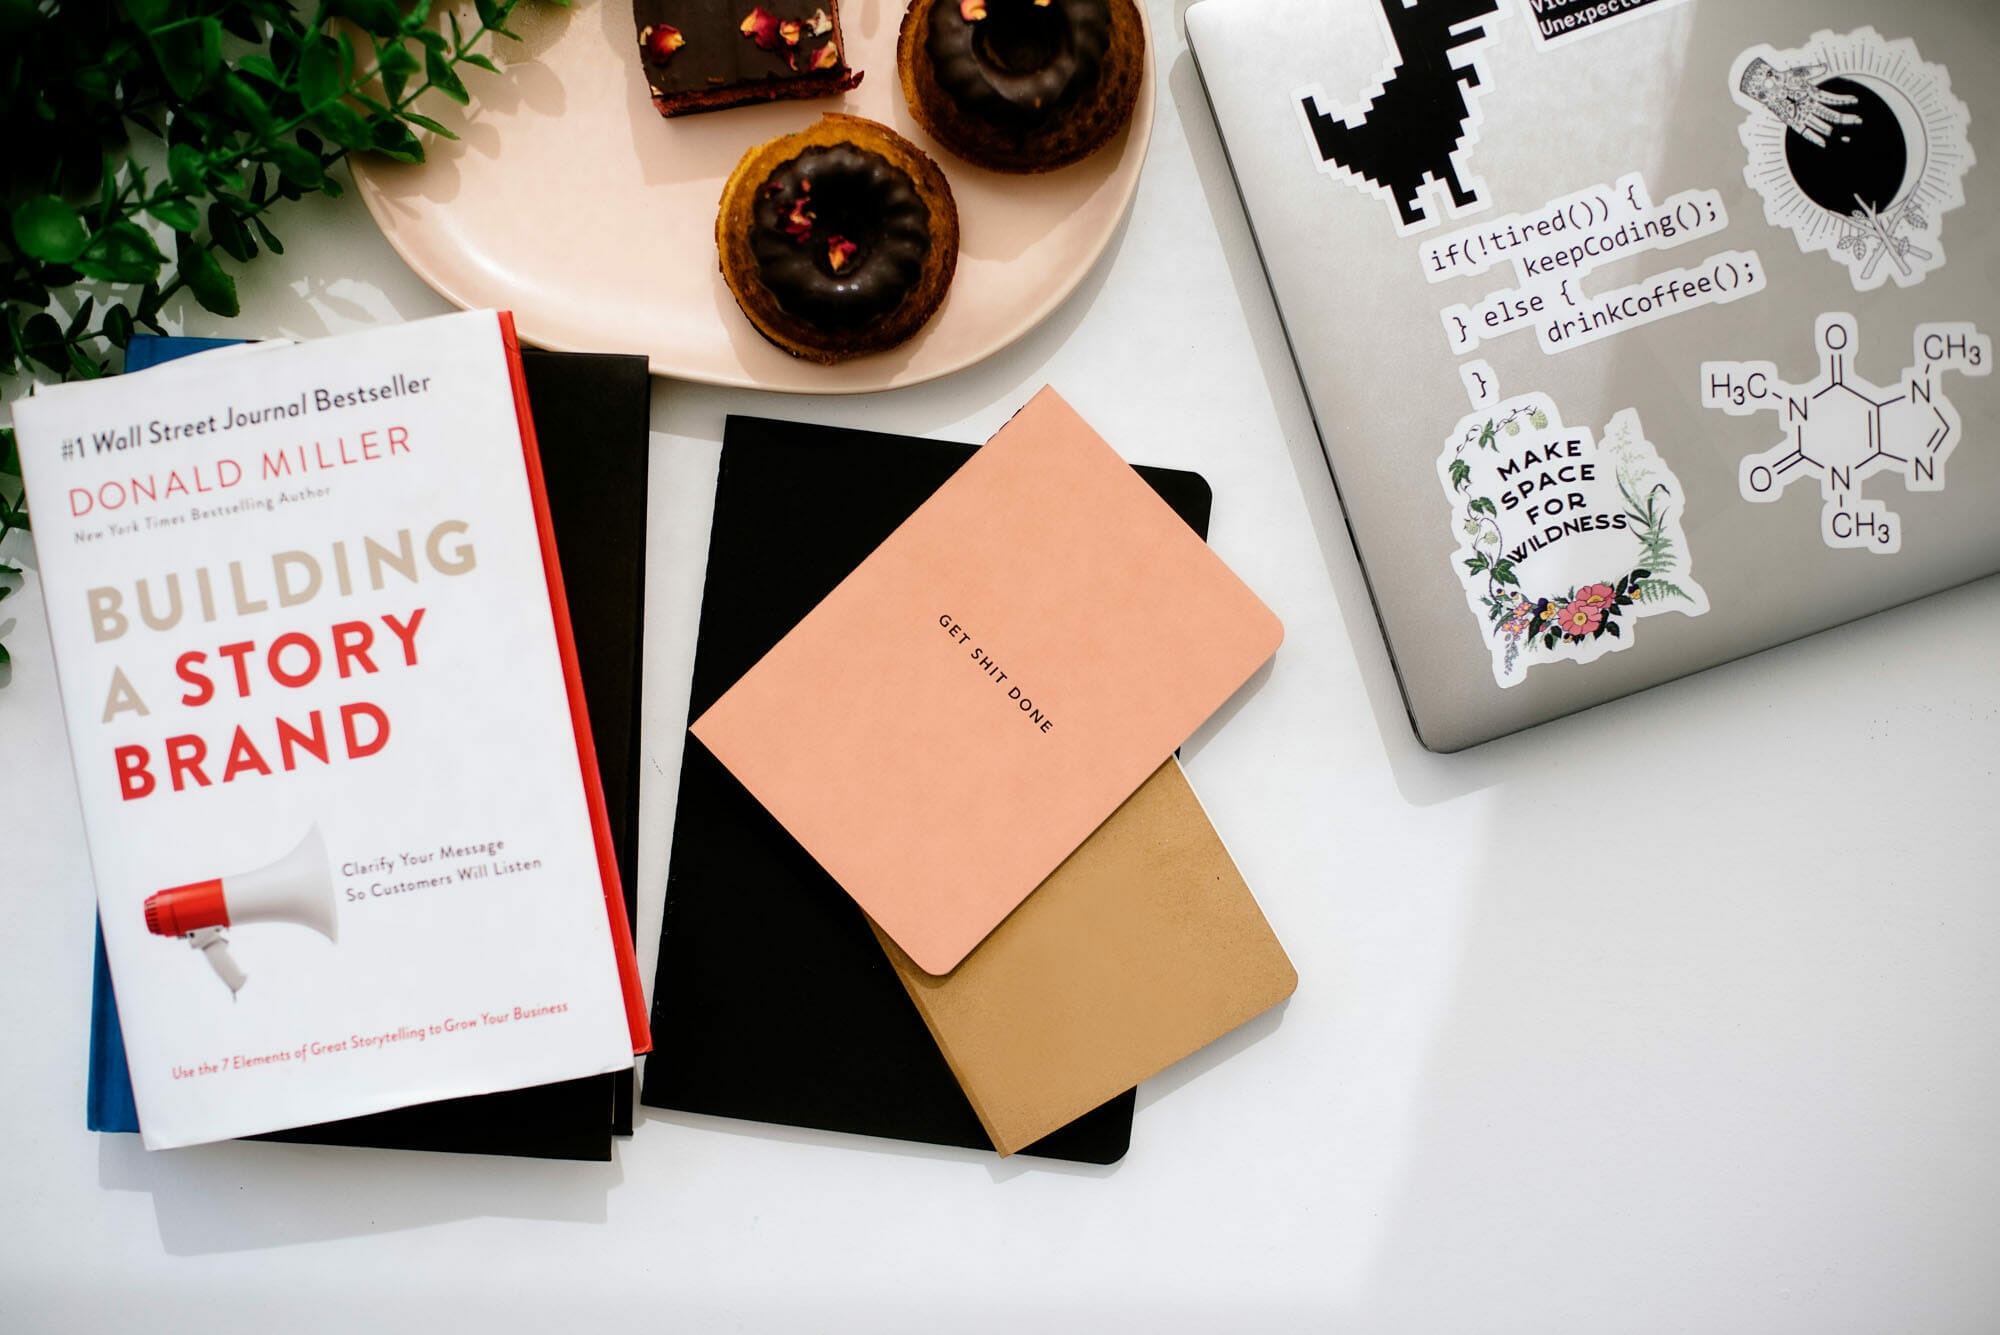 5 of the Best Business Books Entrepreneurs Need to Read - Dawn and Sarah of A Lined Design website consultants review their favourite business books